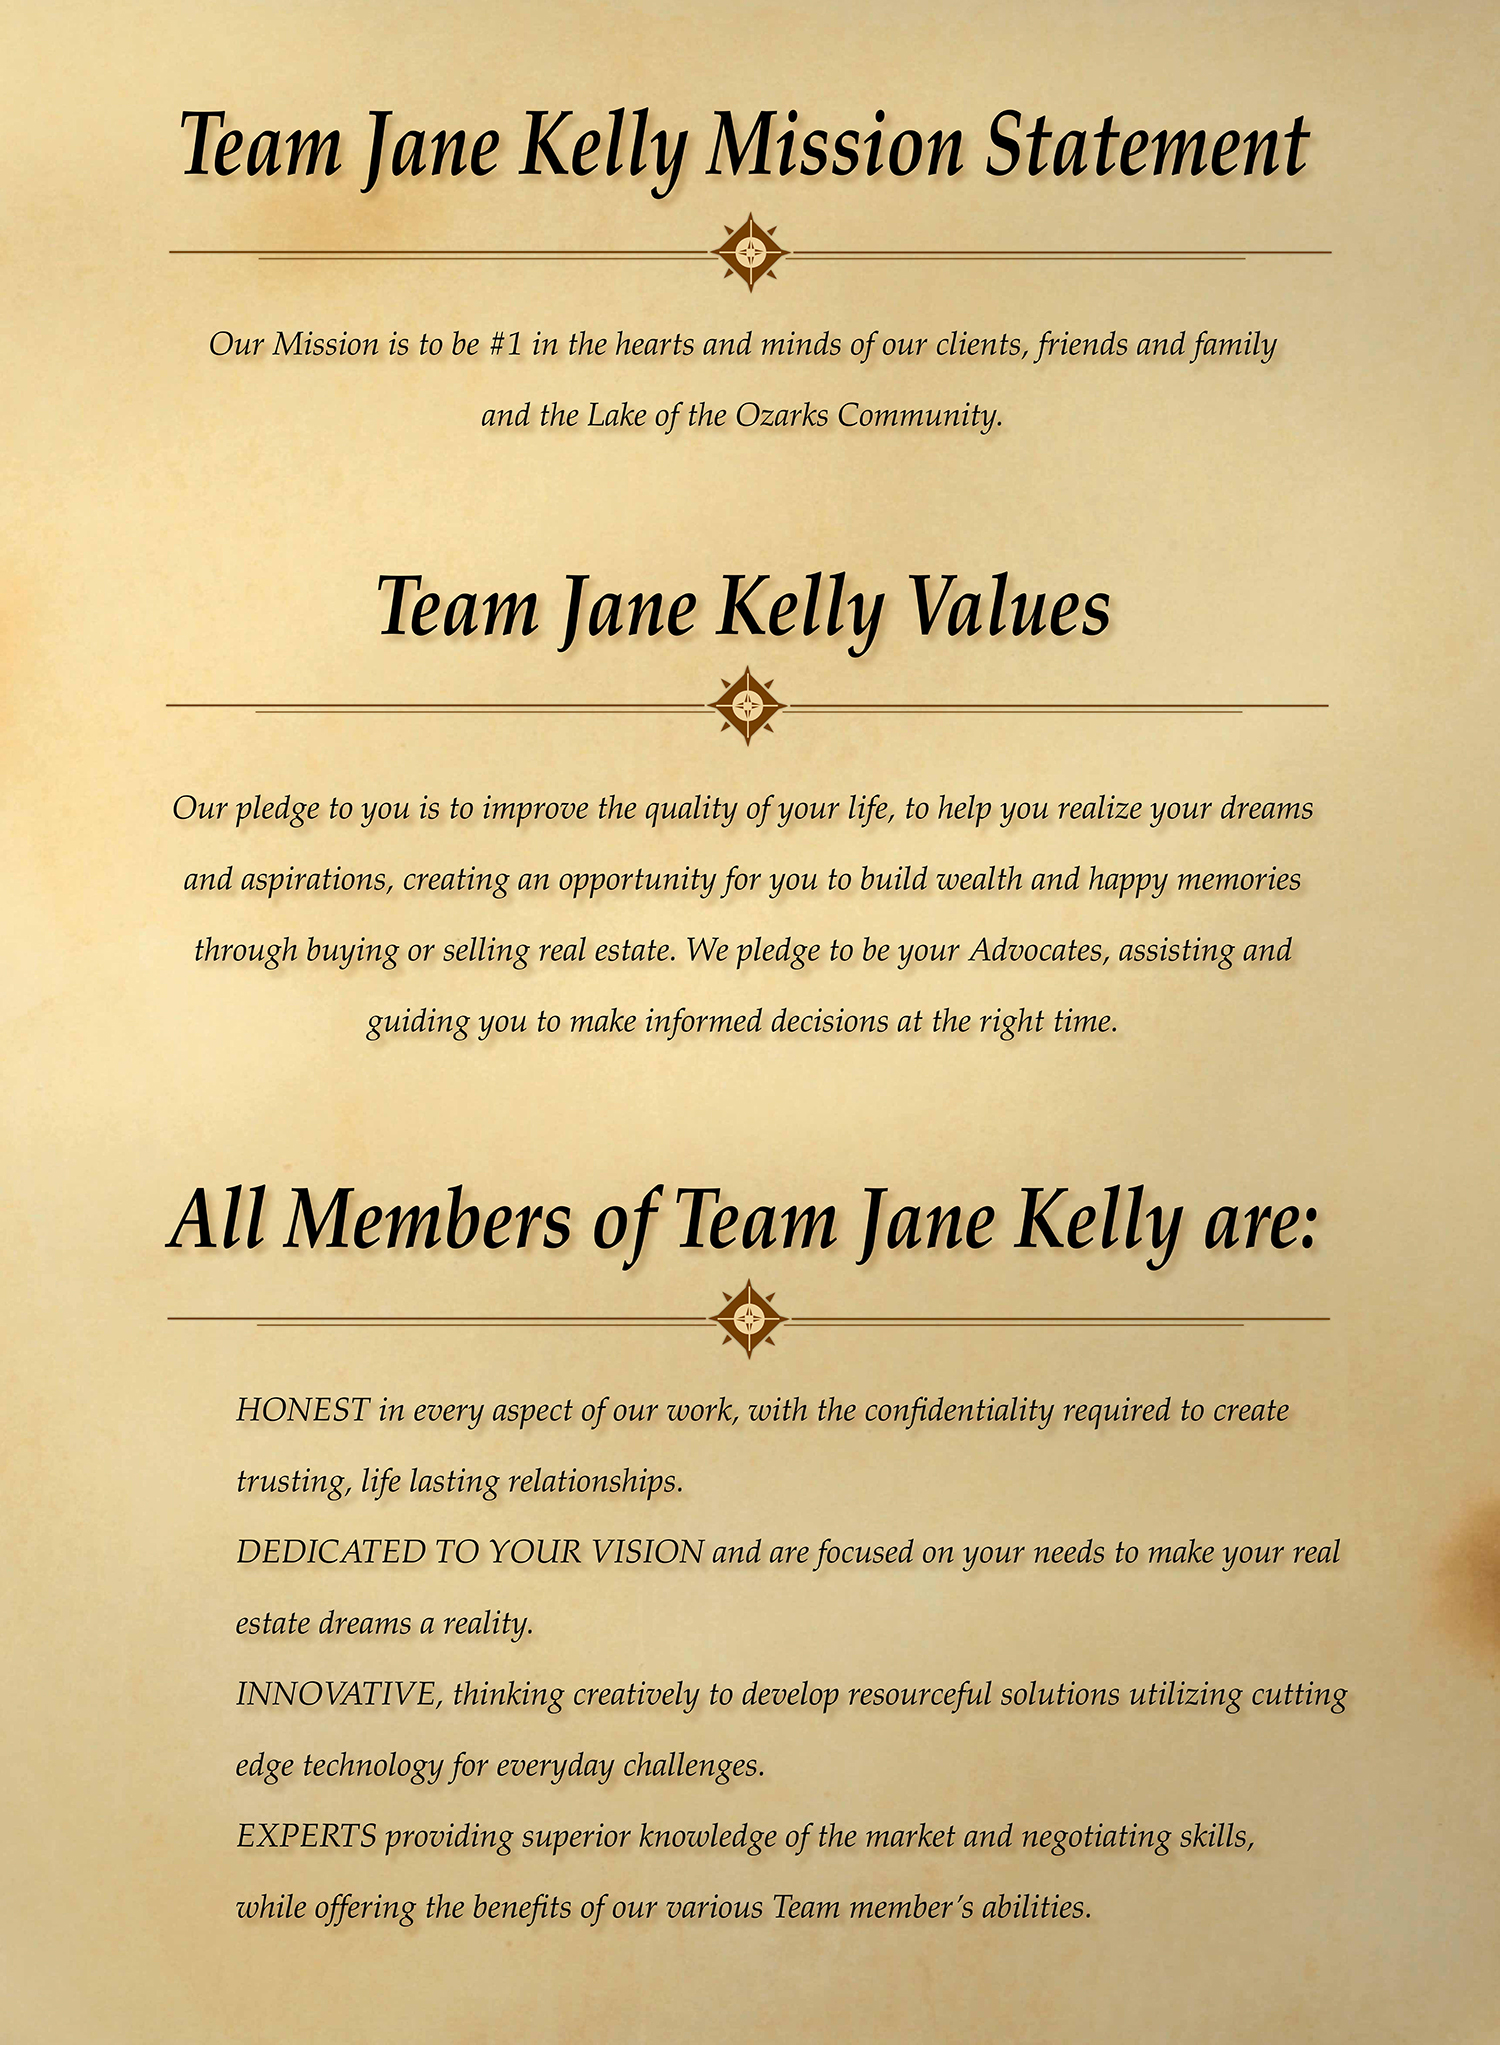 Team Jane Kelly Mission Statement